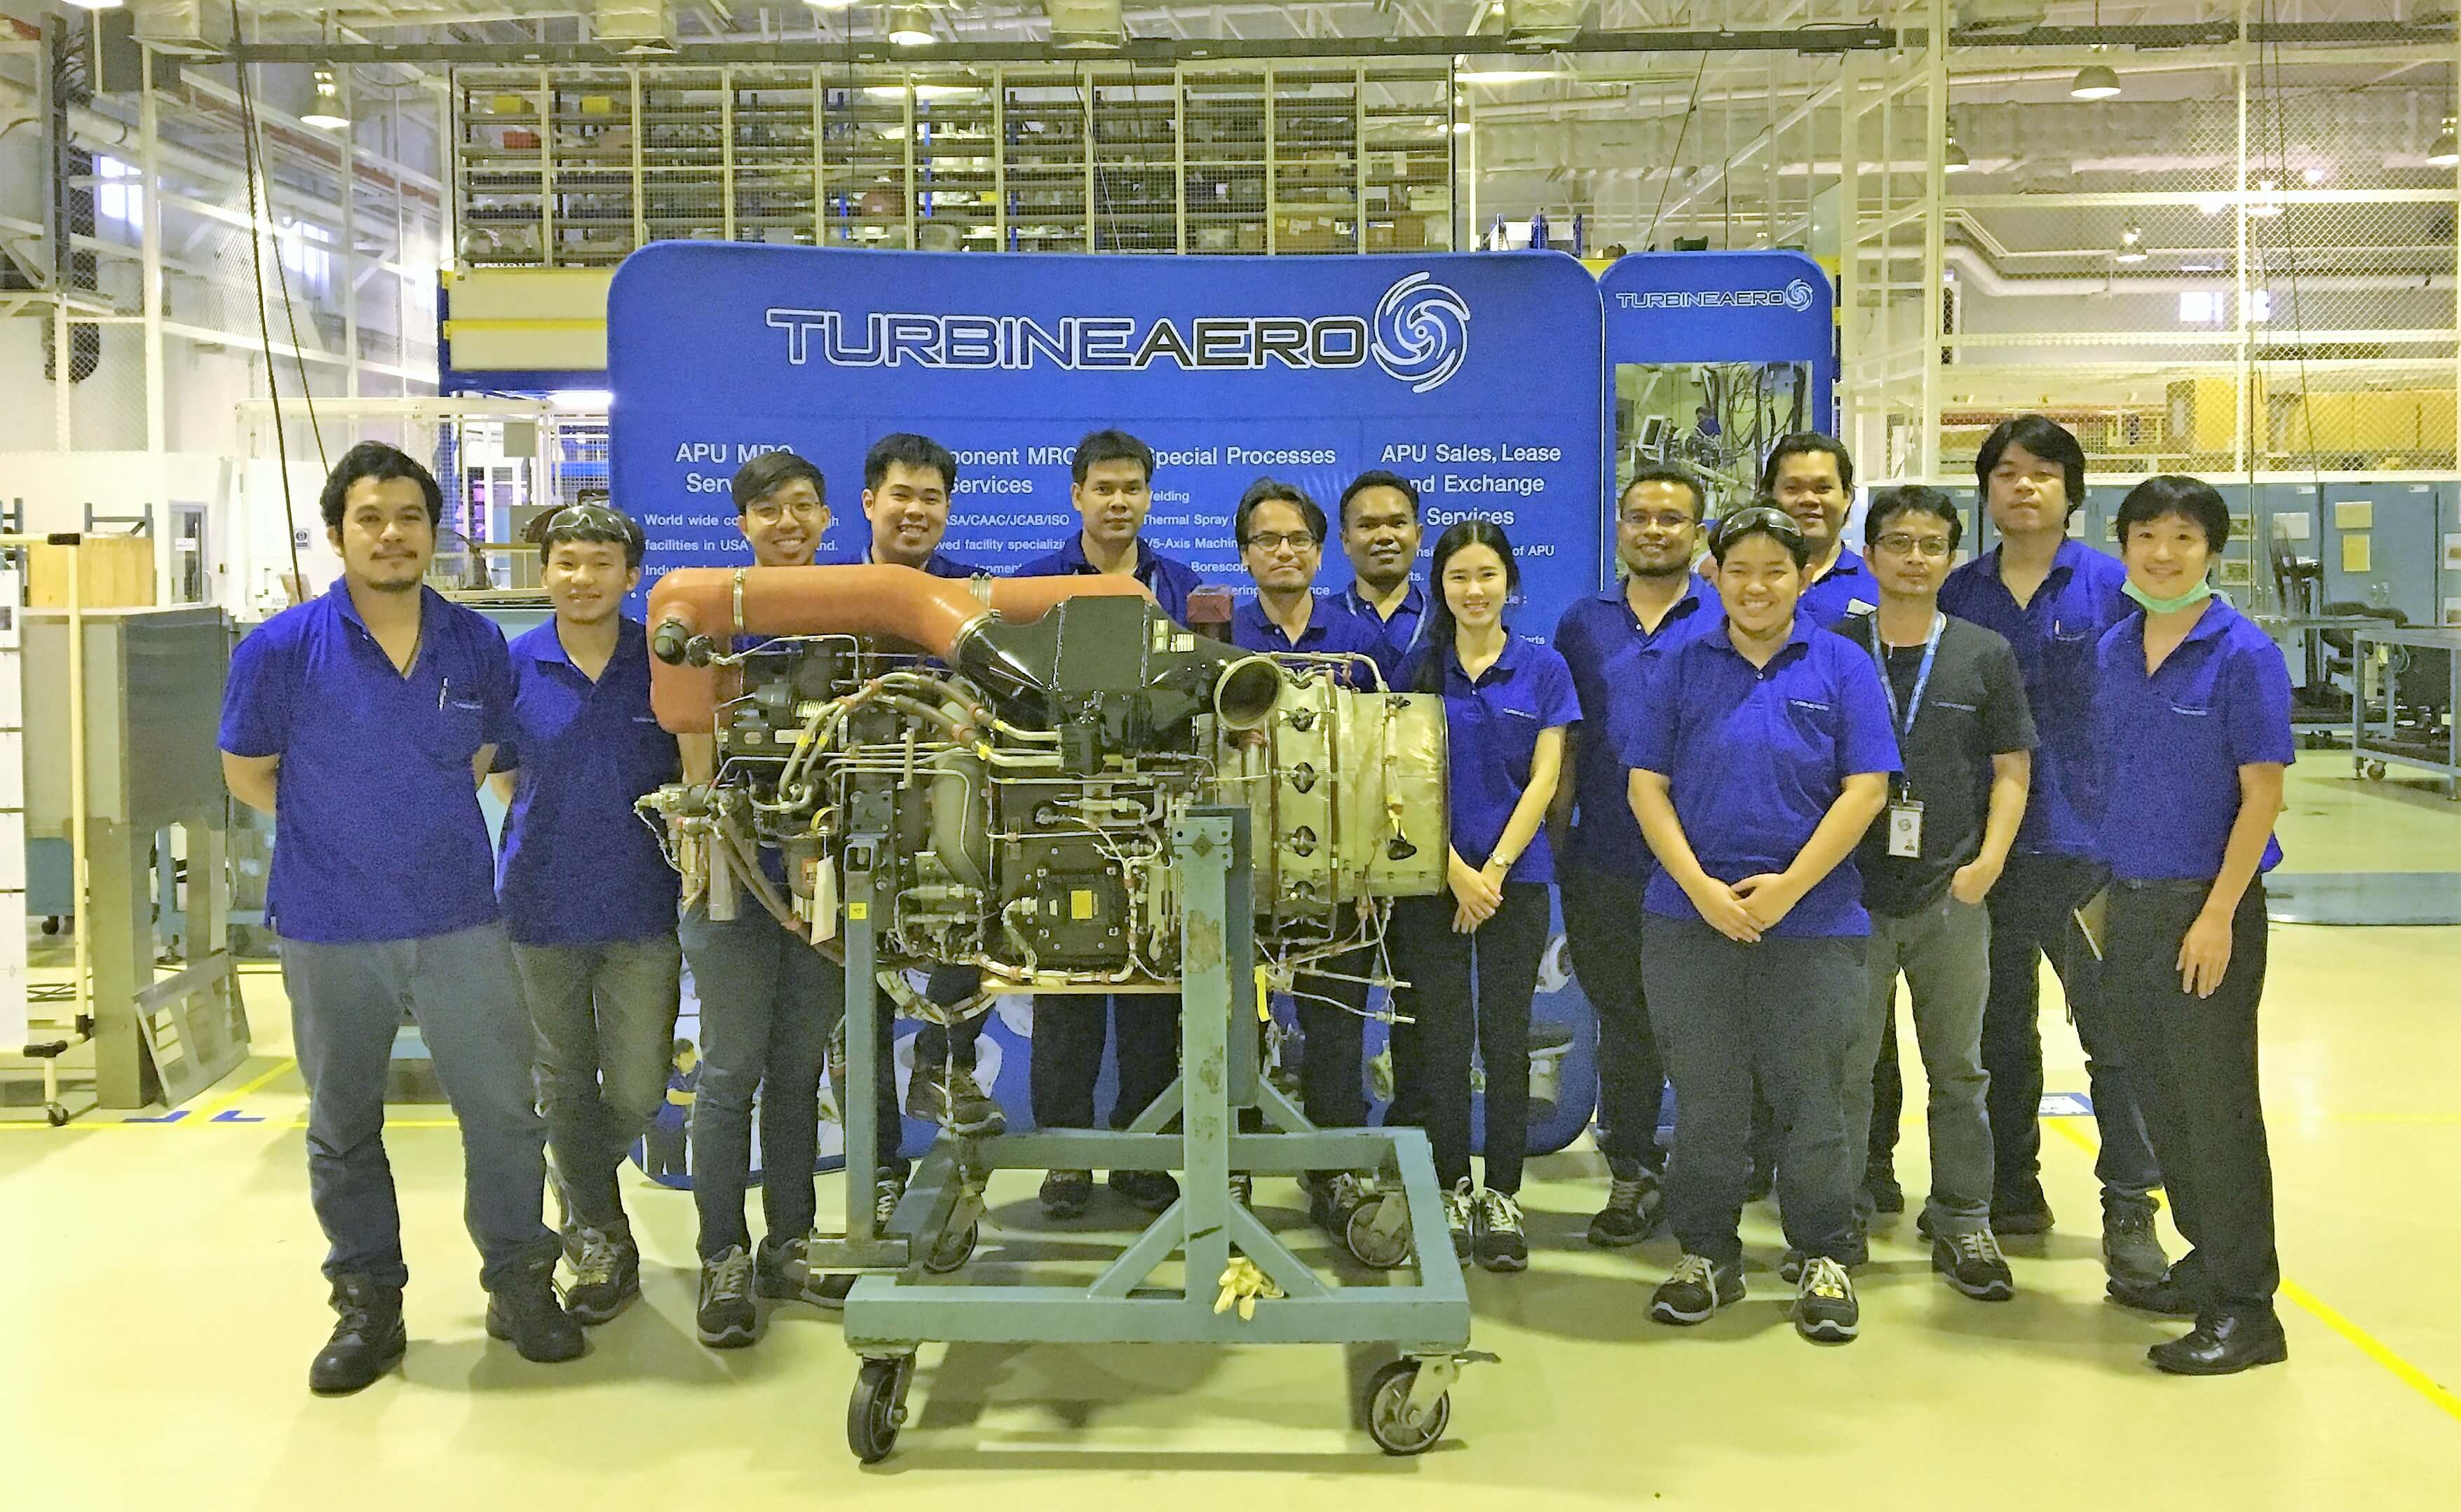 TurbineAero, Inc. Announces Acquisition of APU Piece Part Repair Business from the Triumph Group